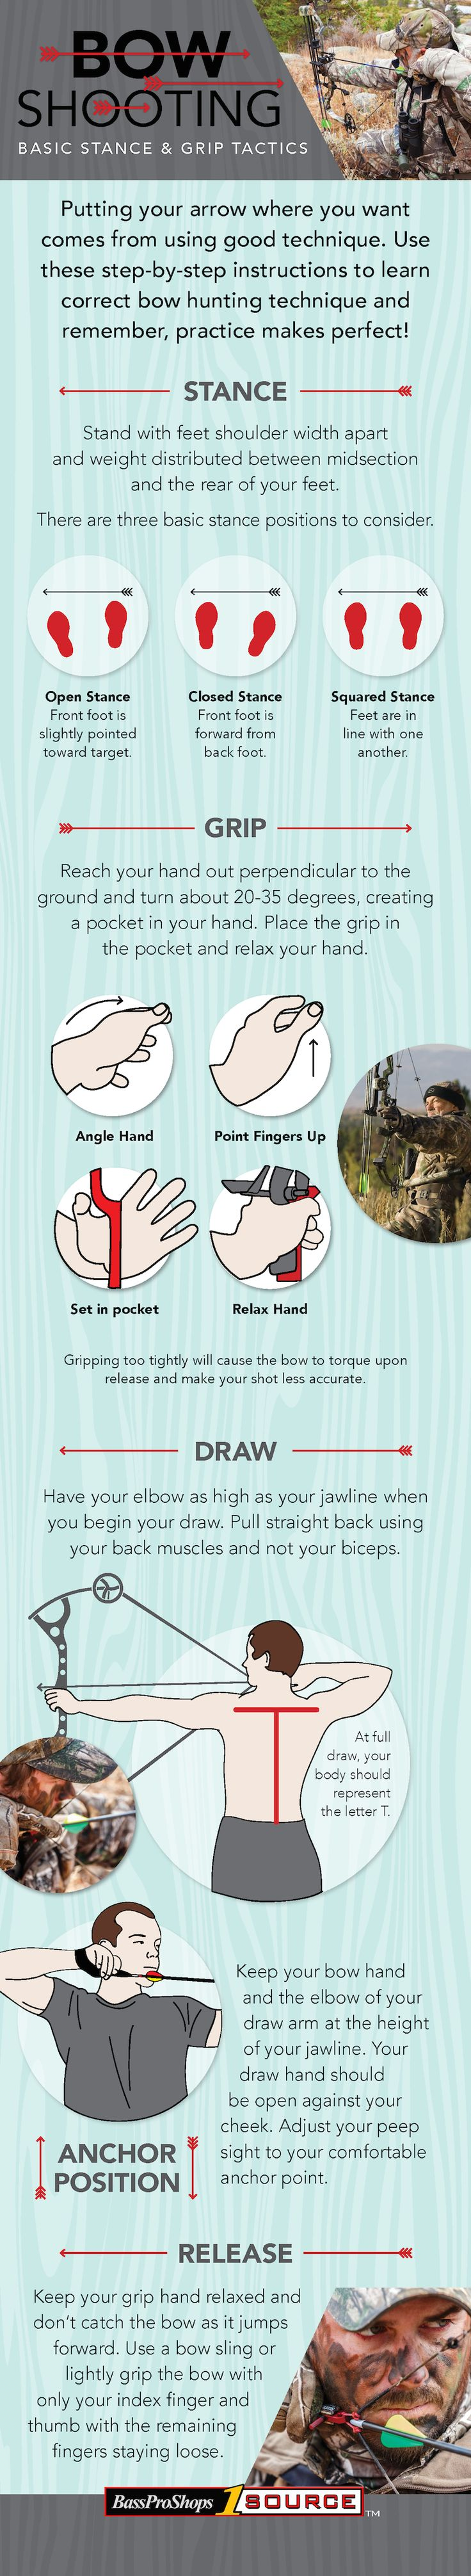 5 Steps to Bow Shooting Basics: Stance & Grip Tactics #huntingtips #bowhunting #basspro #1source #infographic